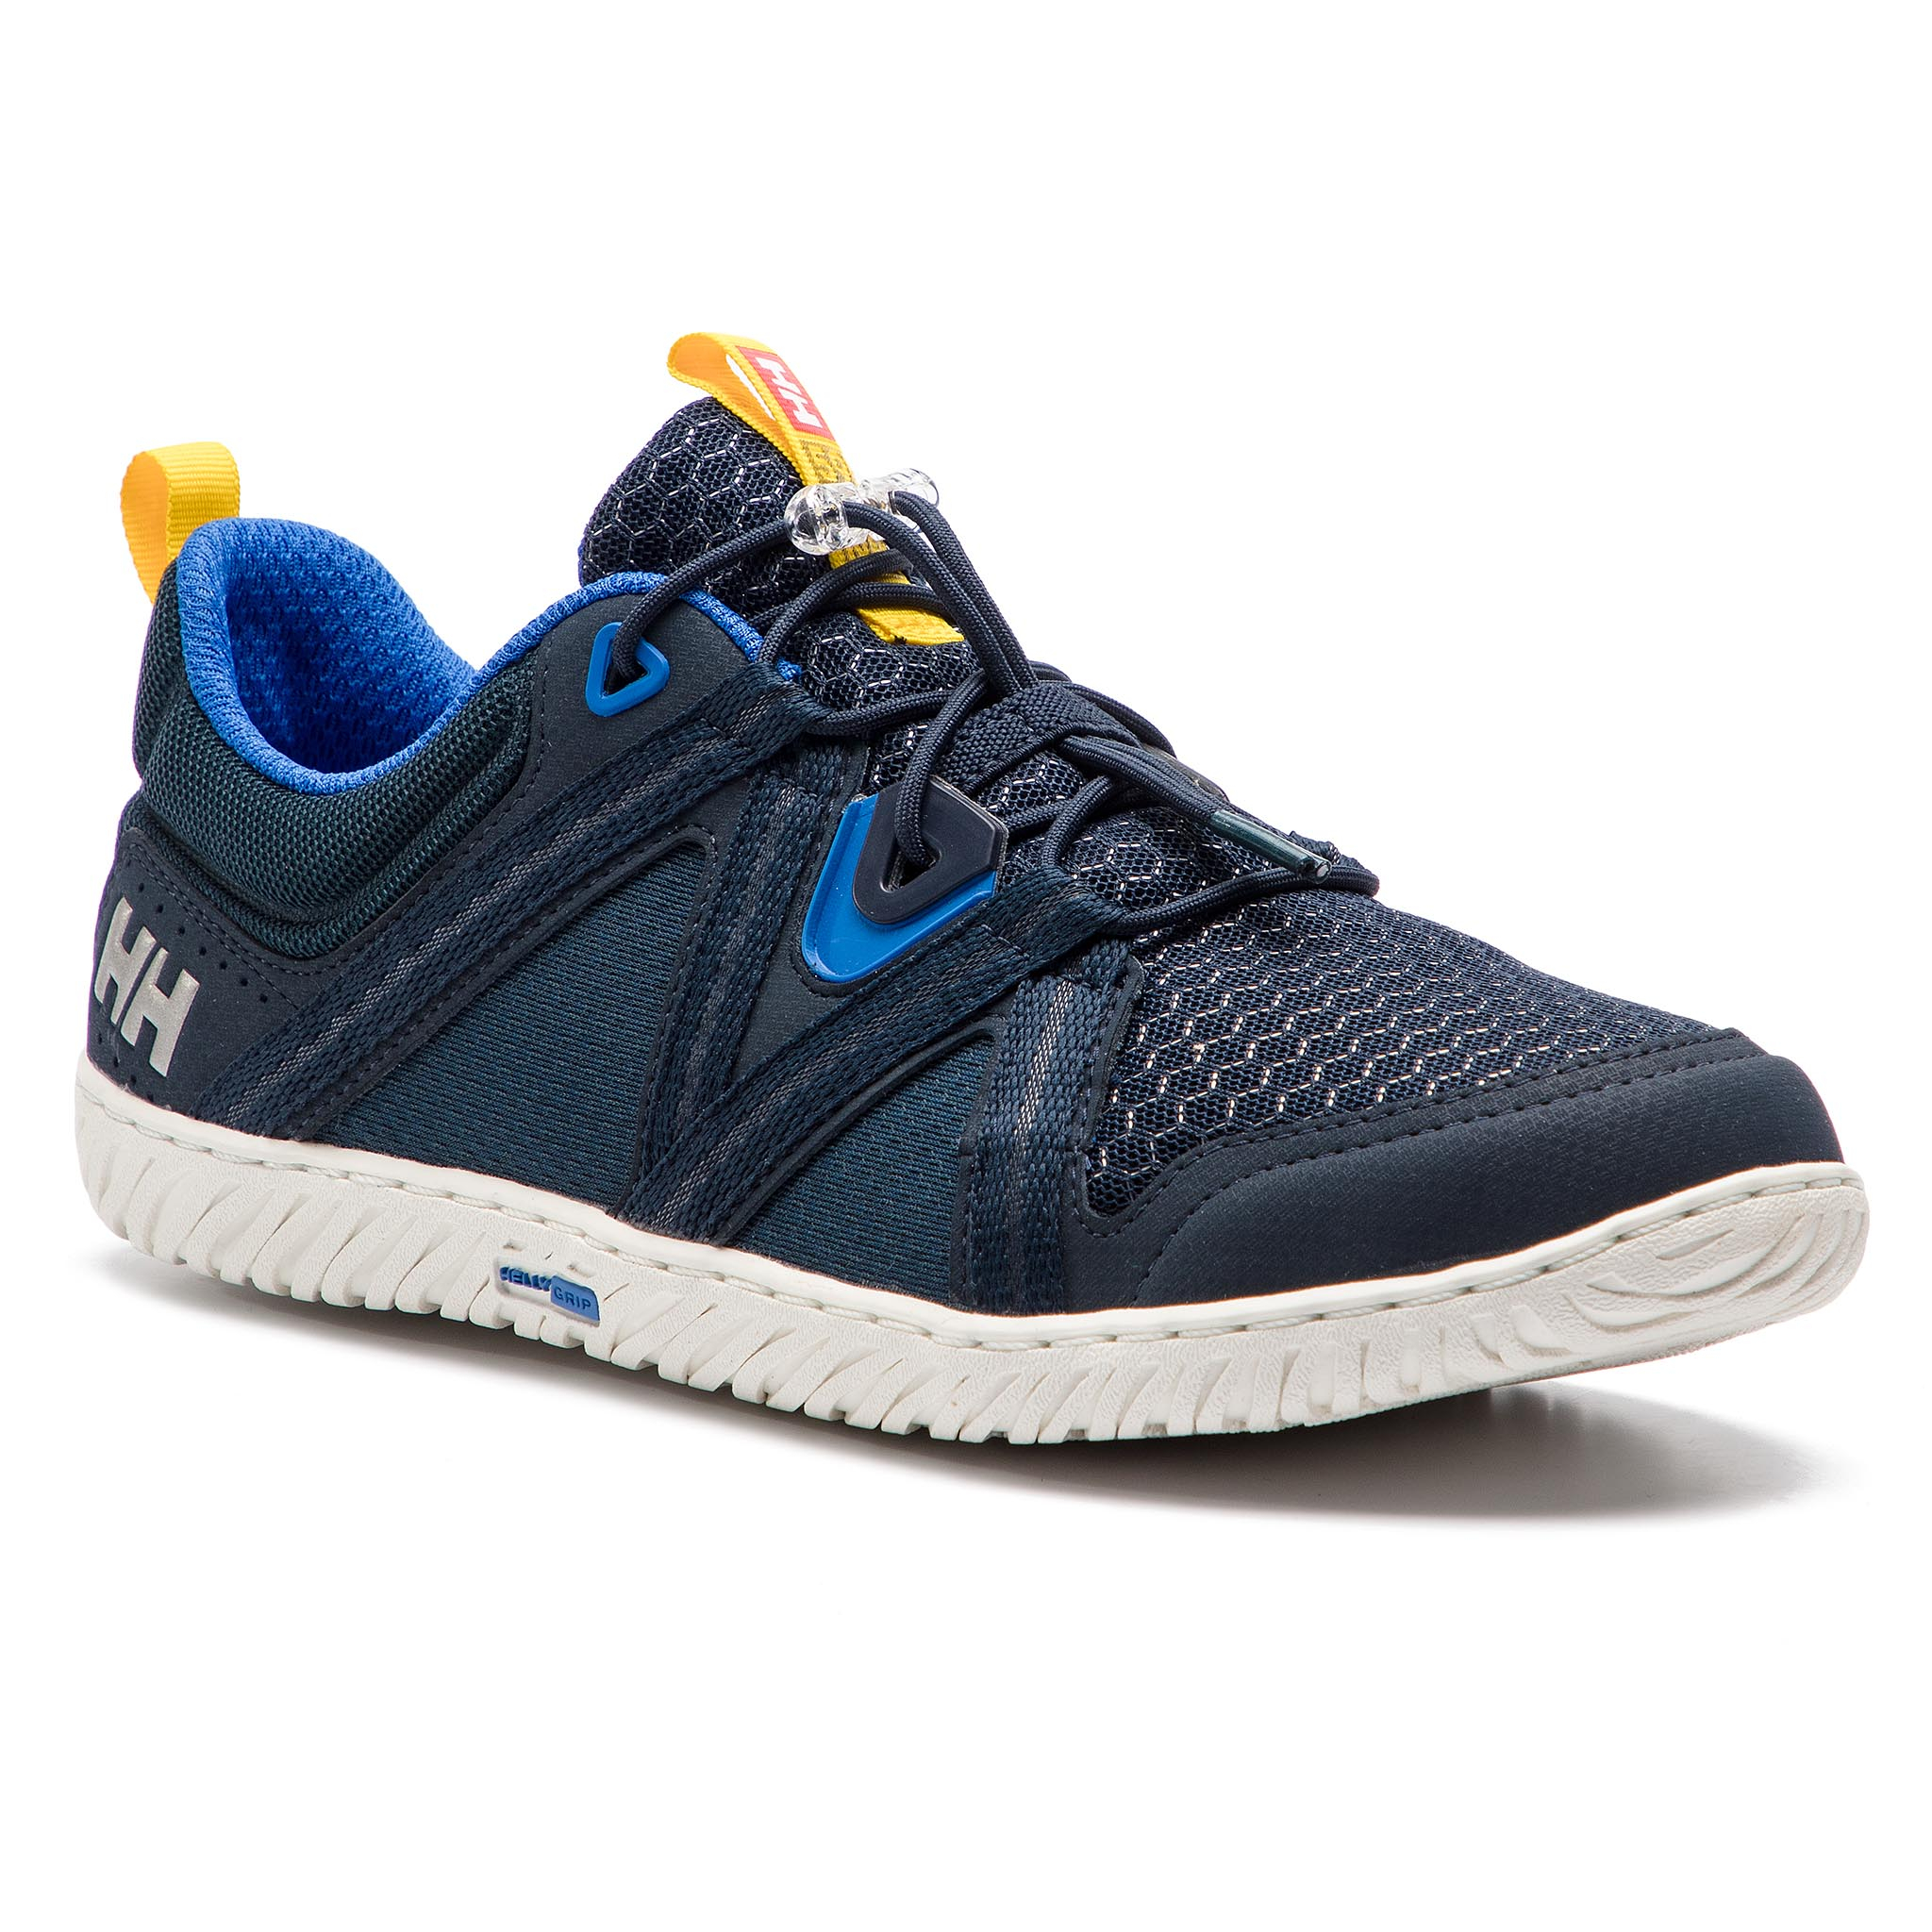 Batai HELLY HANSEN - Hp Foil F-1 113-15.597 Navy/Olympian Blue/Off White/Neon Yellow/Antique Silver Met